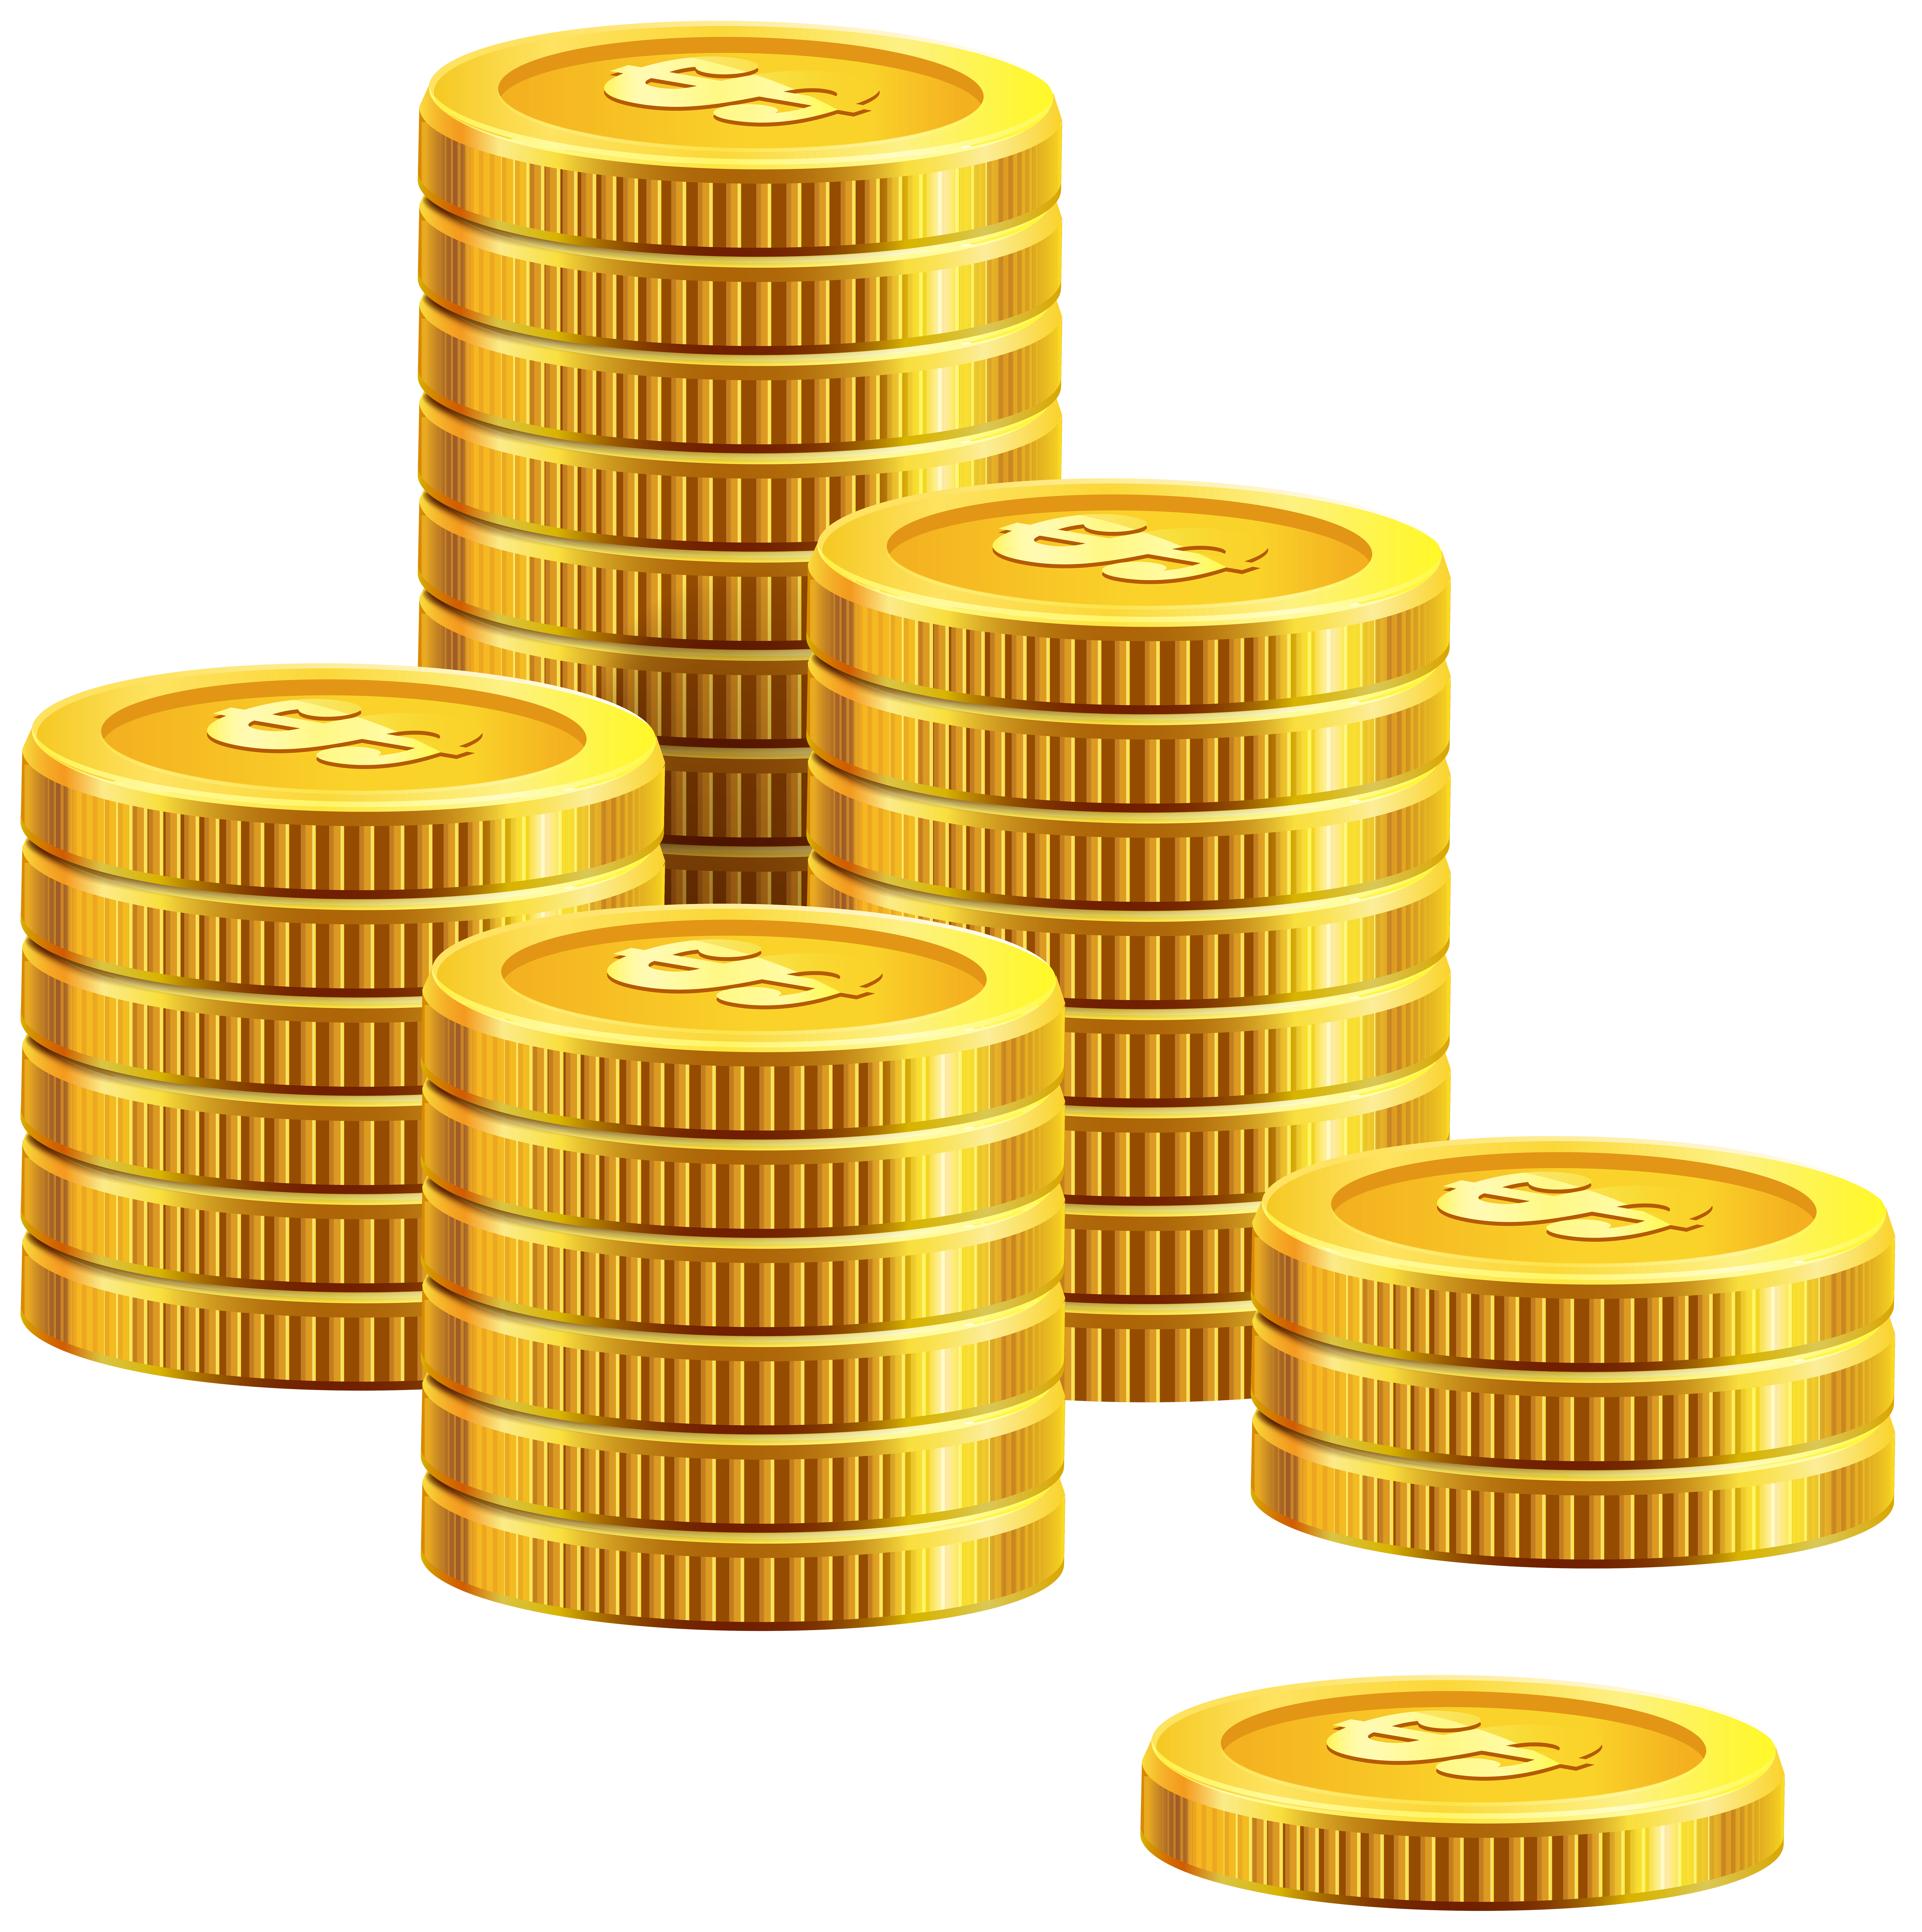 Real stack of money clipart freeuse download Pile of Coins PNG Clip Art - Best WEB Clipart freeuse download